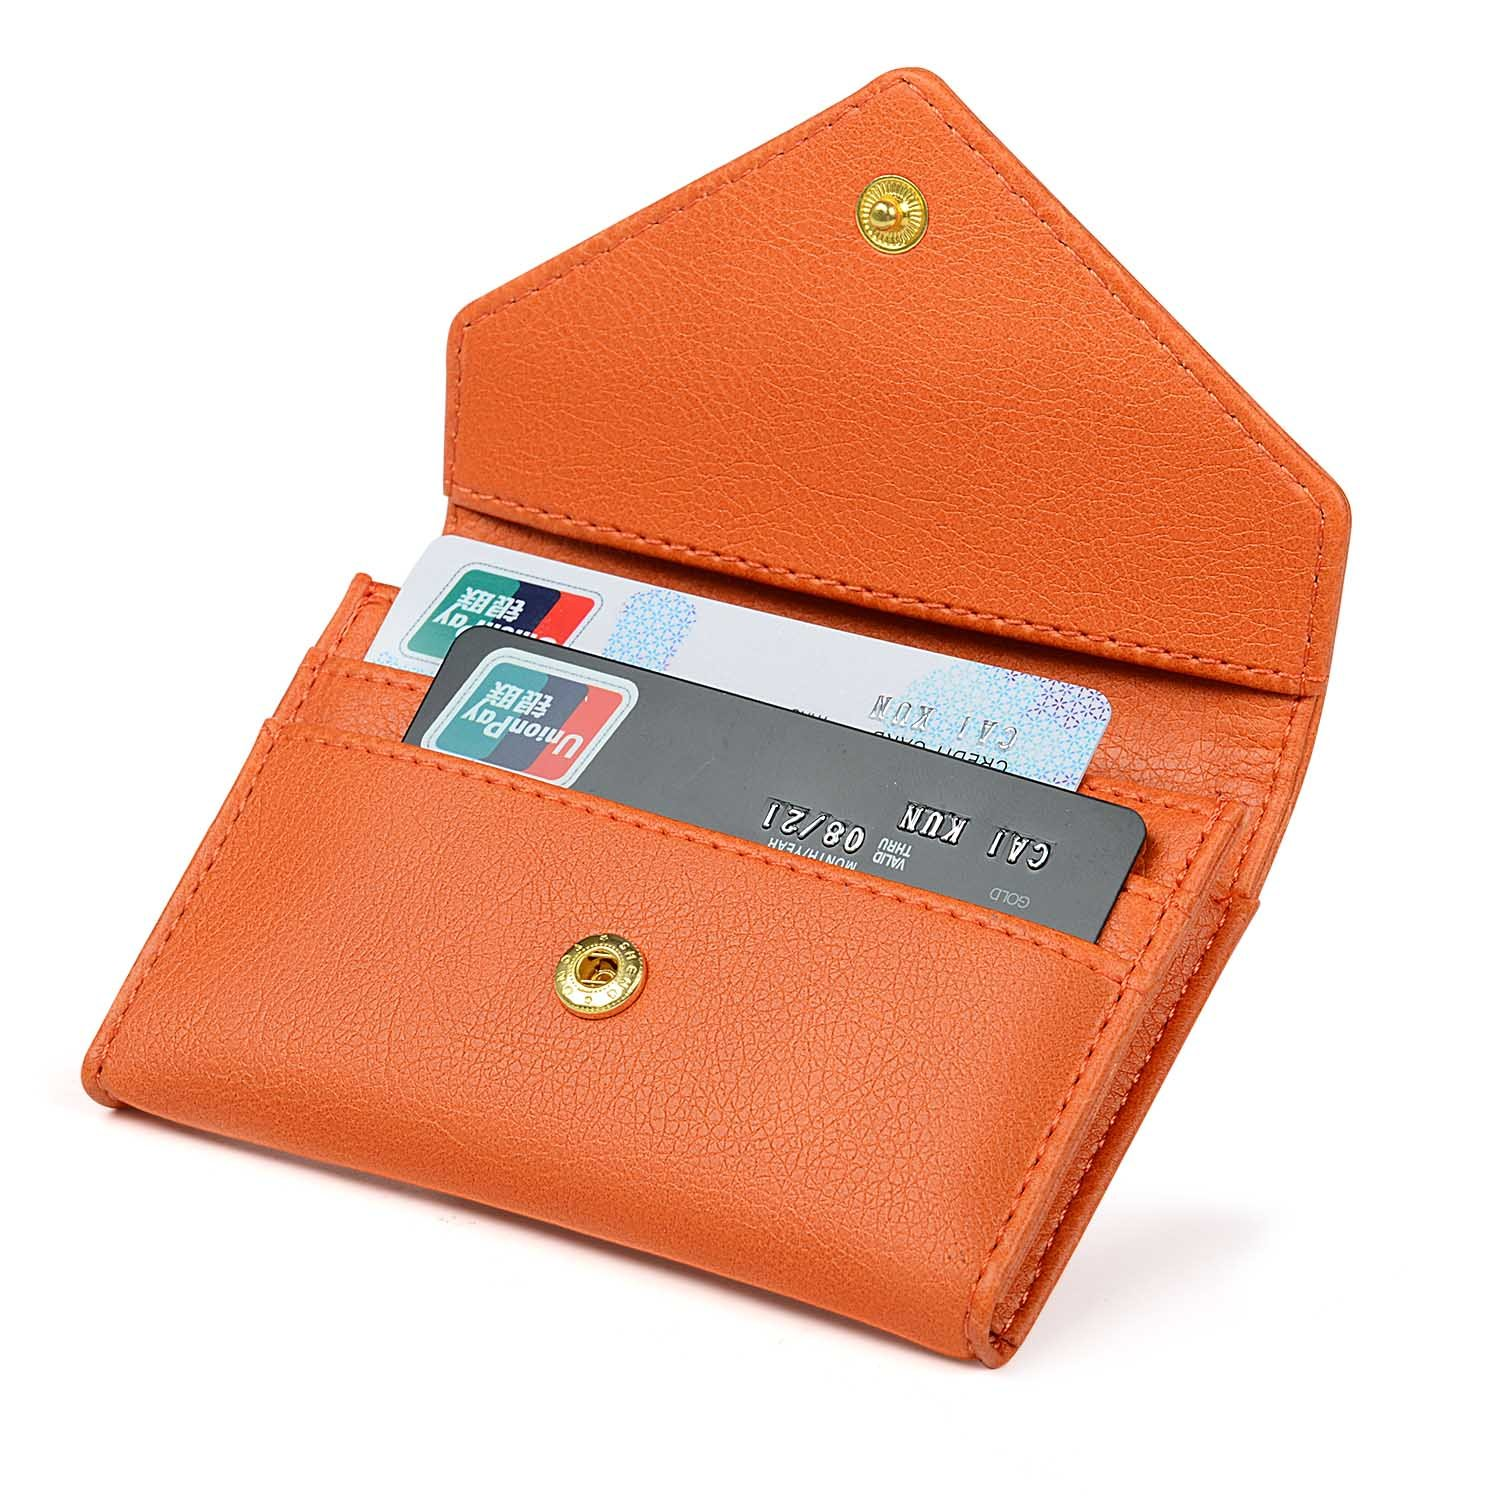 Women's Card Case Wallet Credit Card Holder Name Card Case Front Pocket Wallet for Ladies by XEYOU